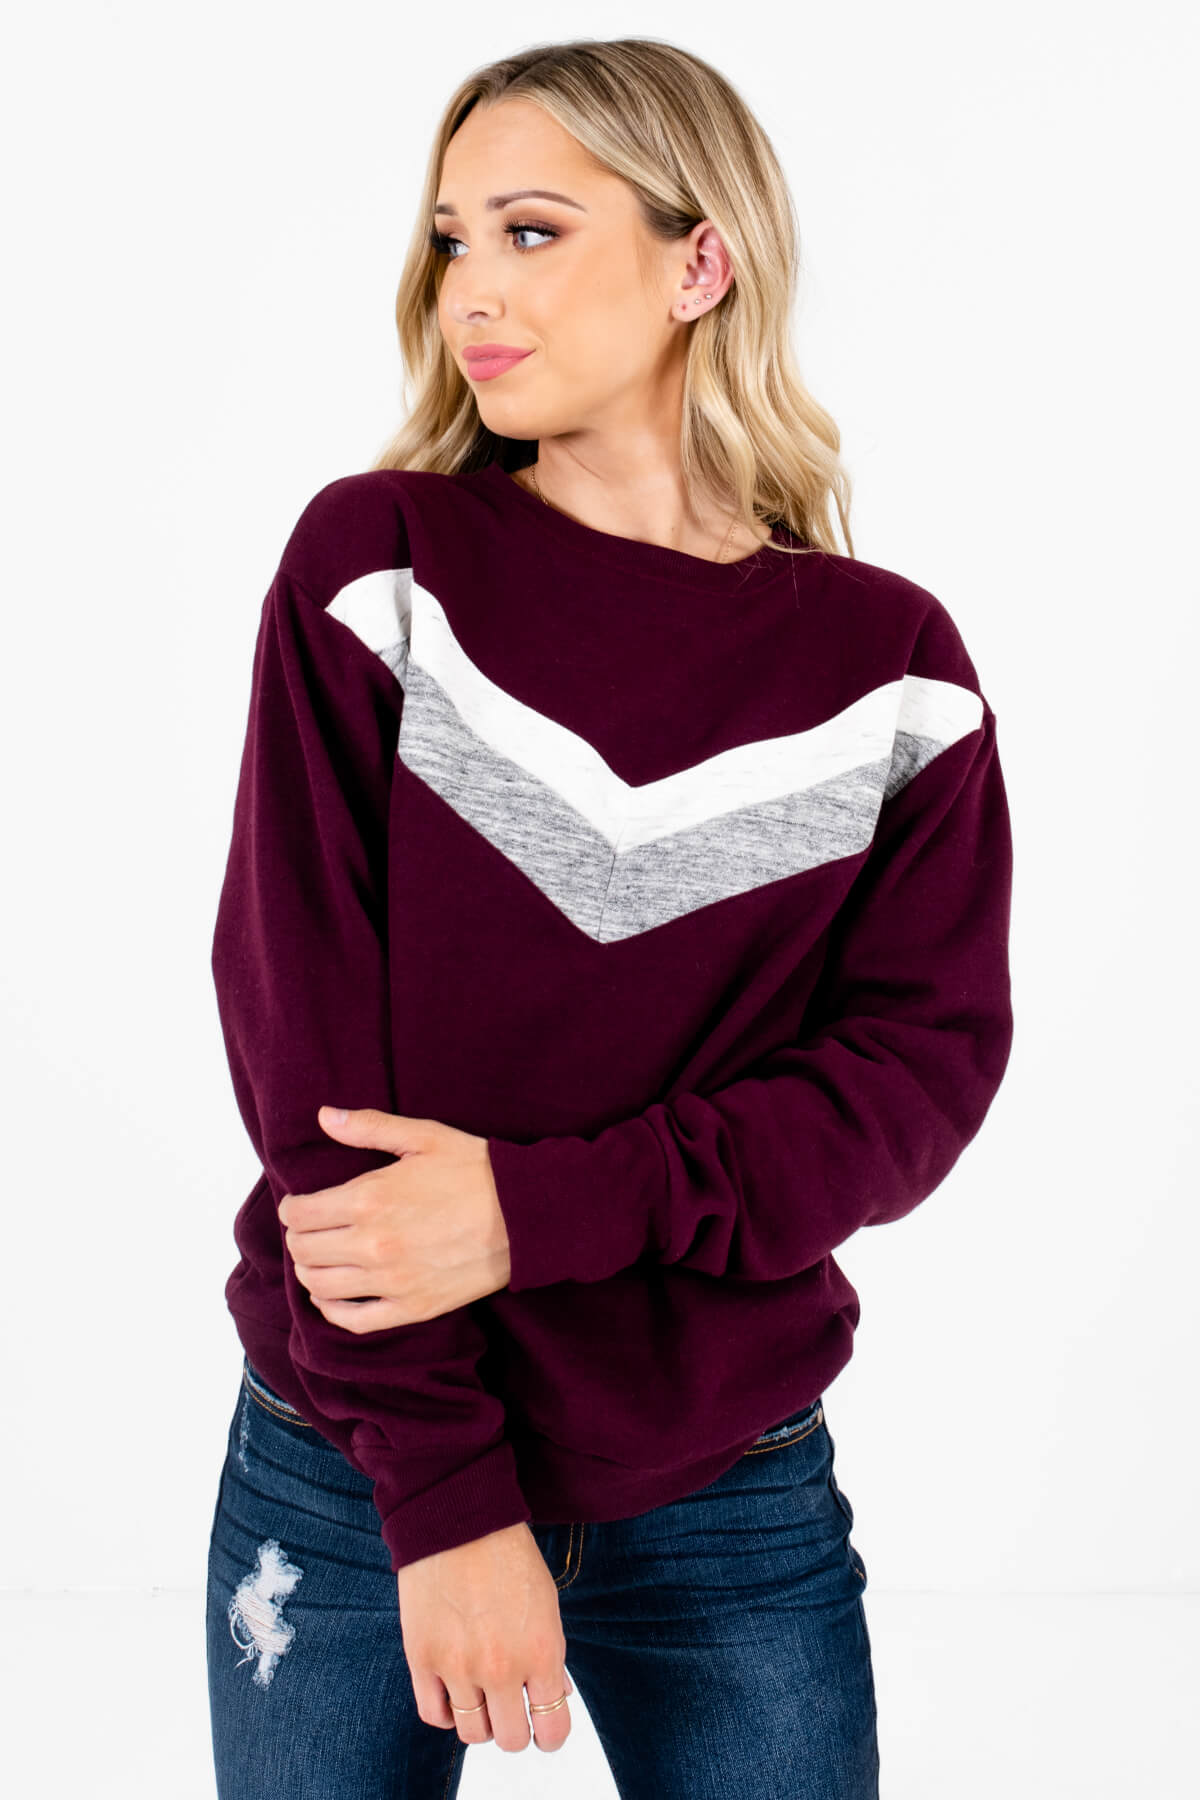 Dark Purple Retro Stripe Patterned Boutique Pullovers for Women